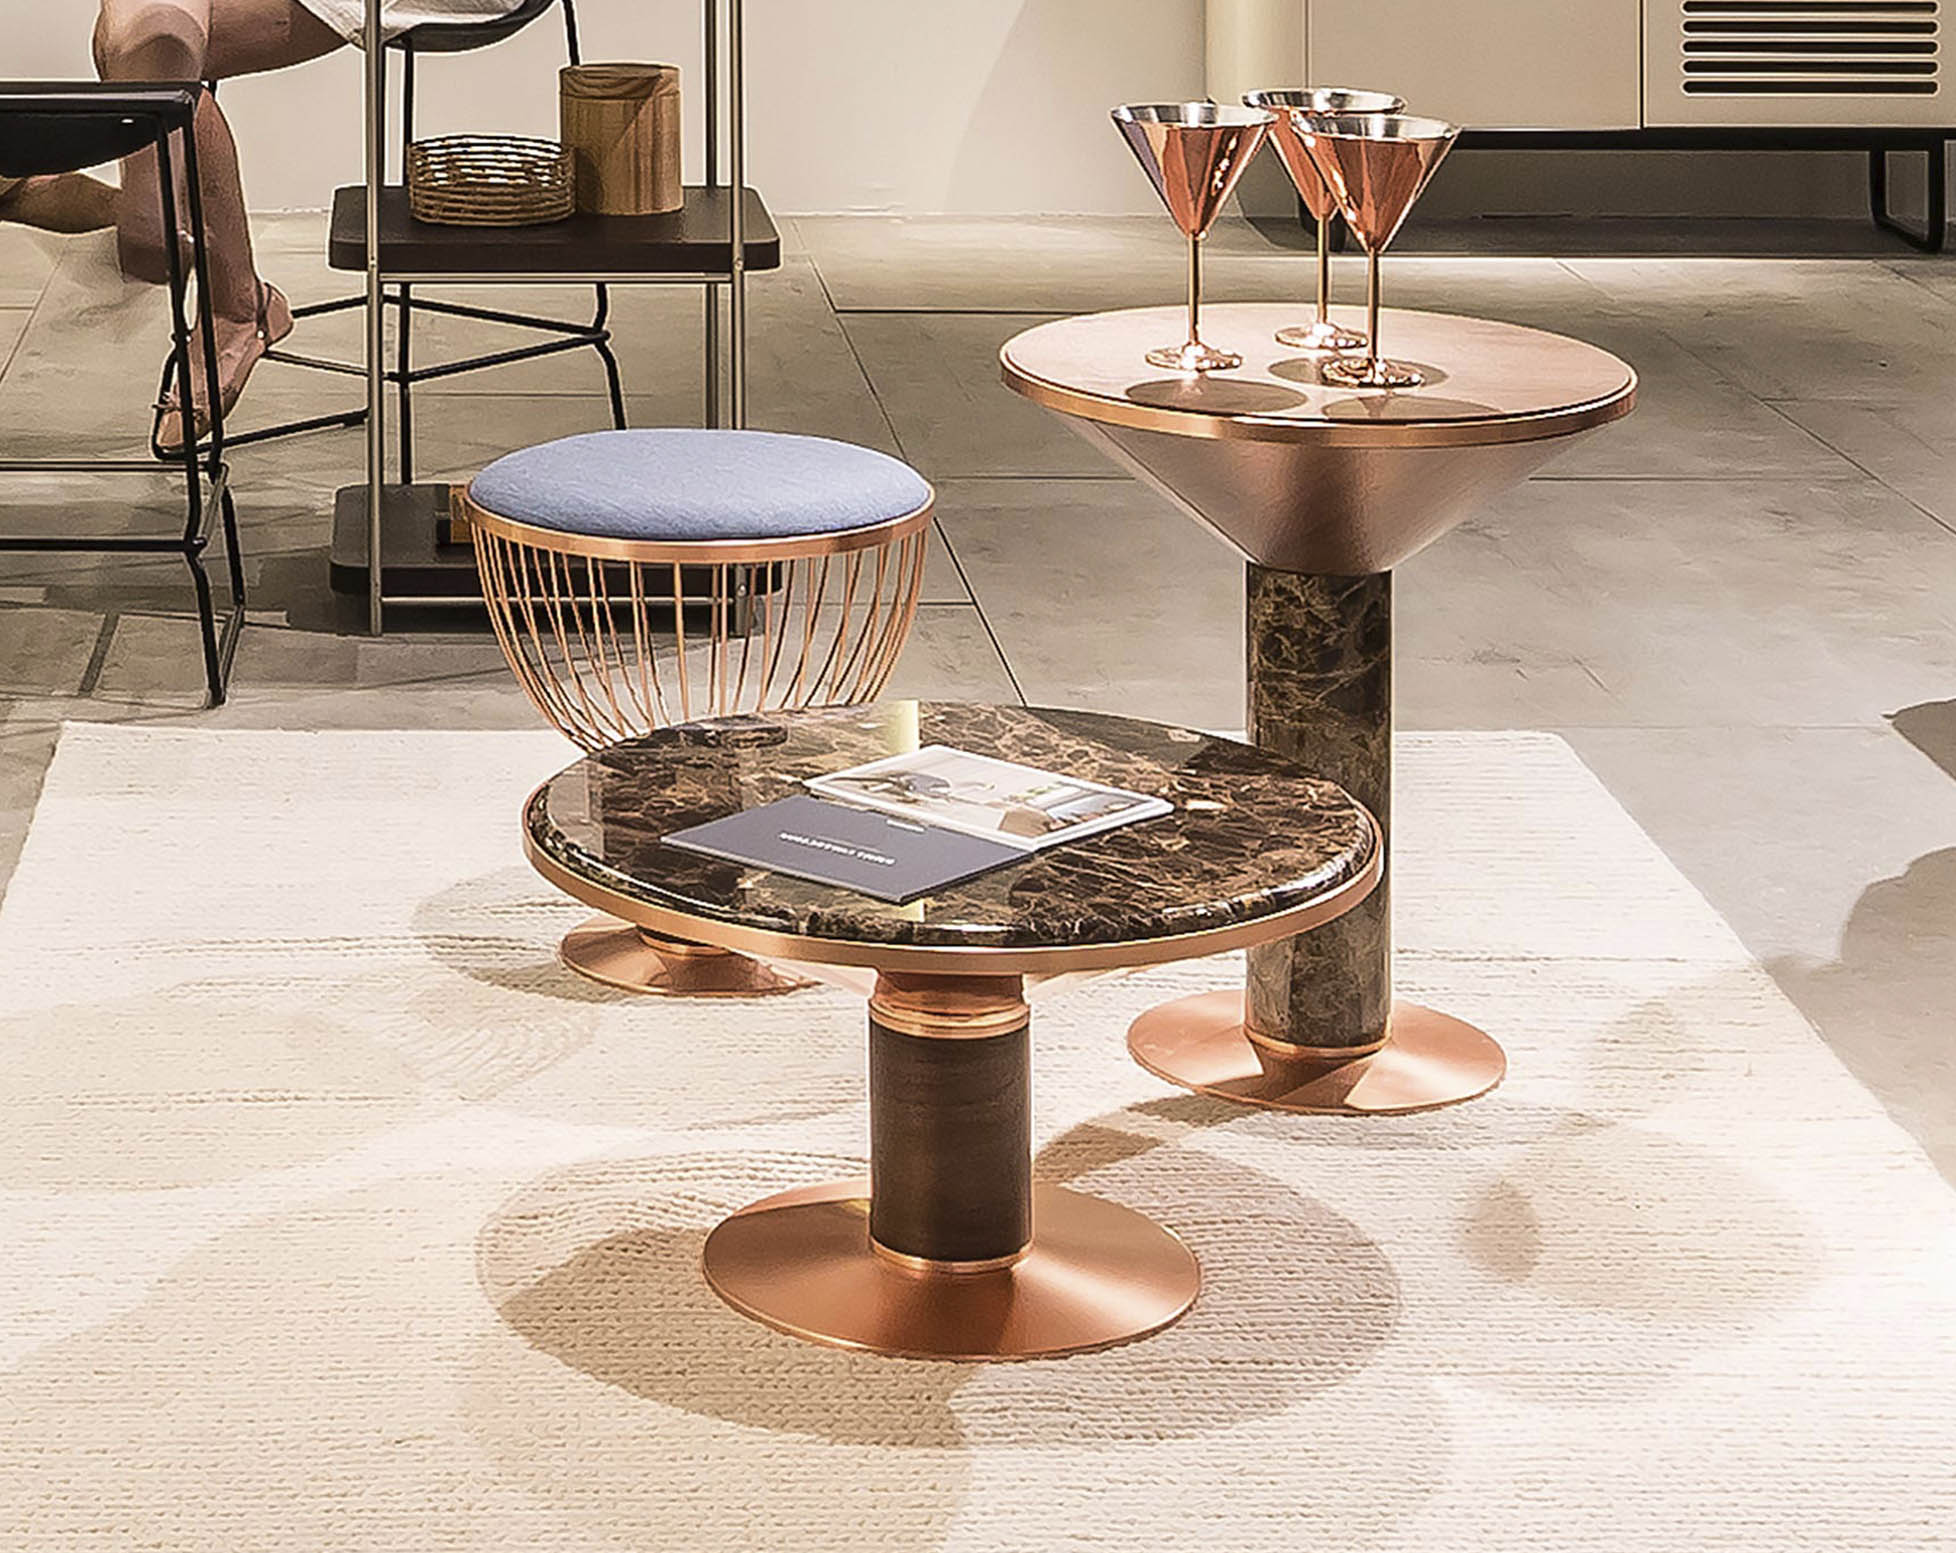 Emma by Momocca coppel side table